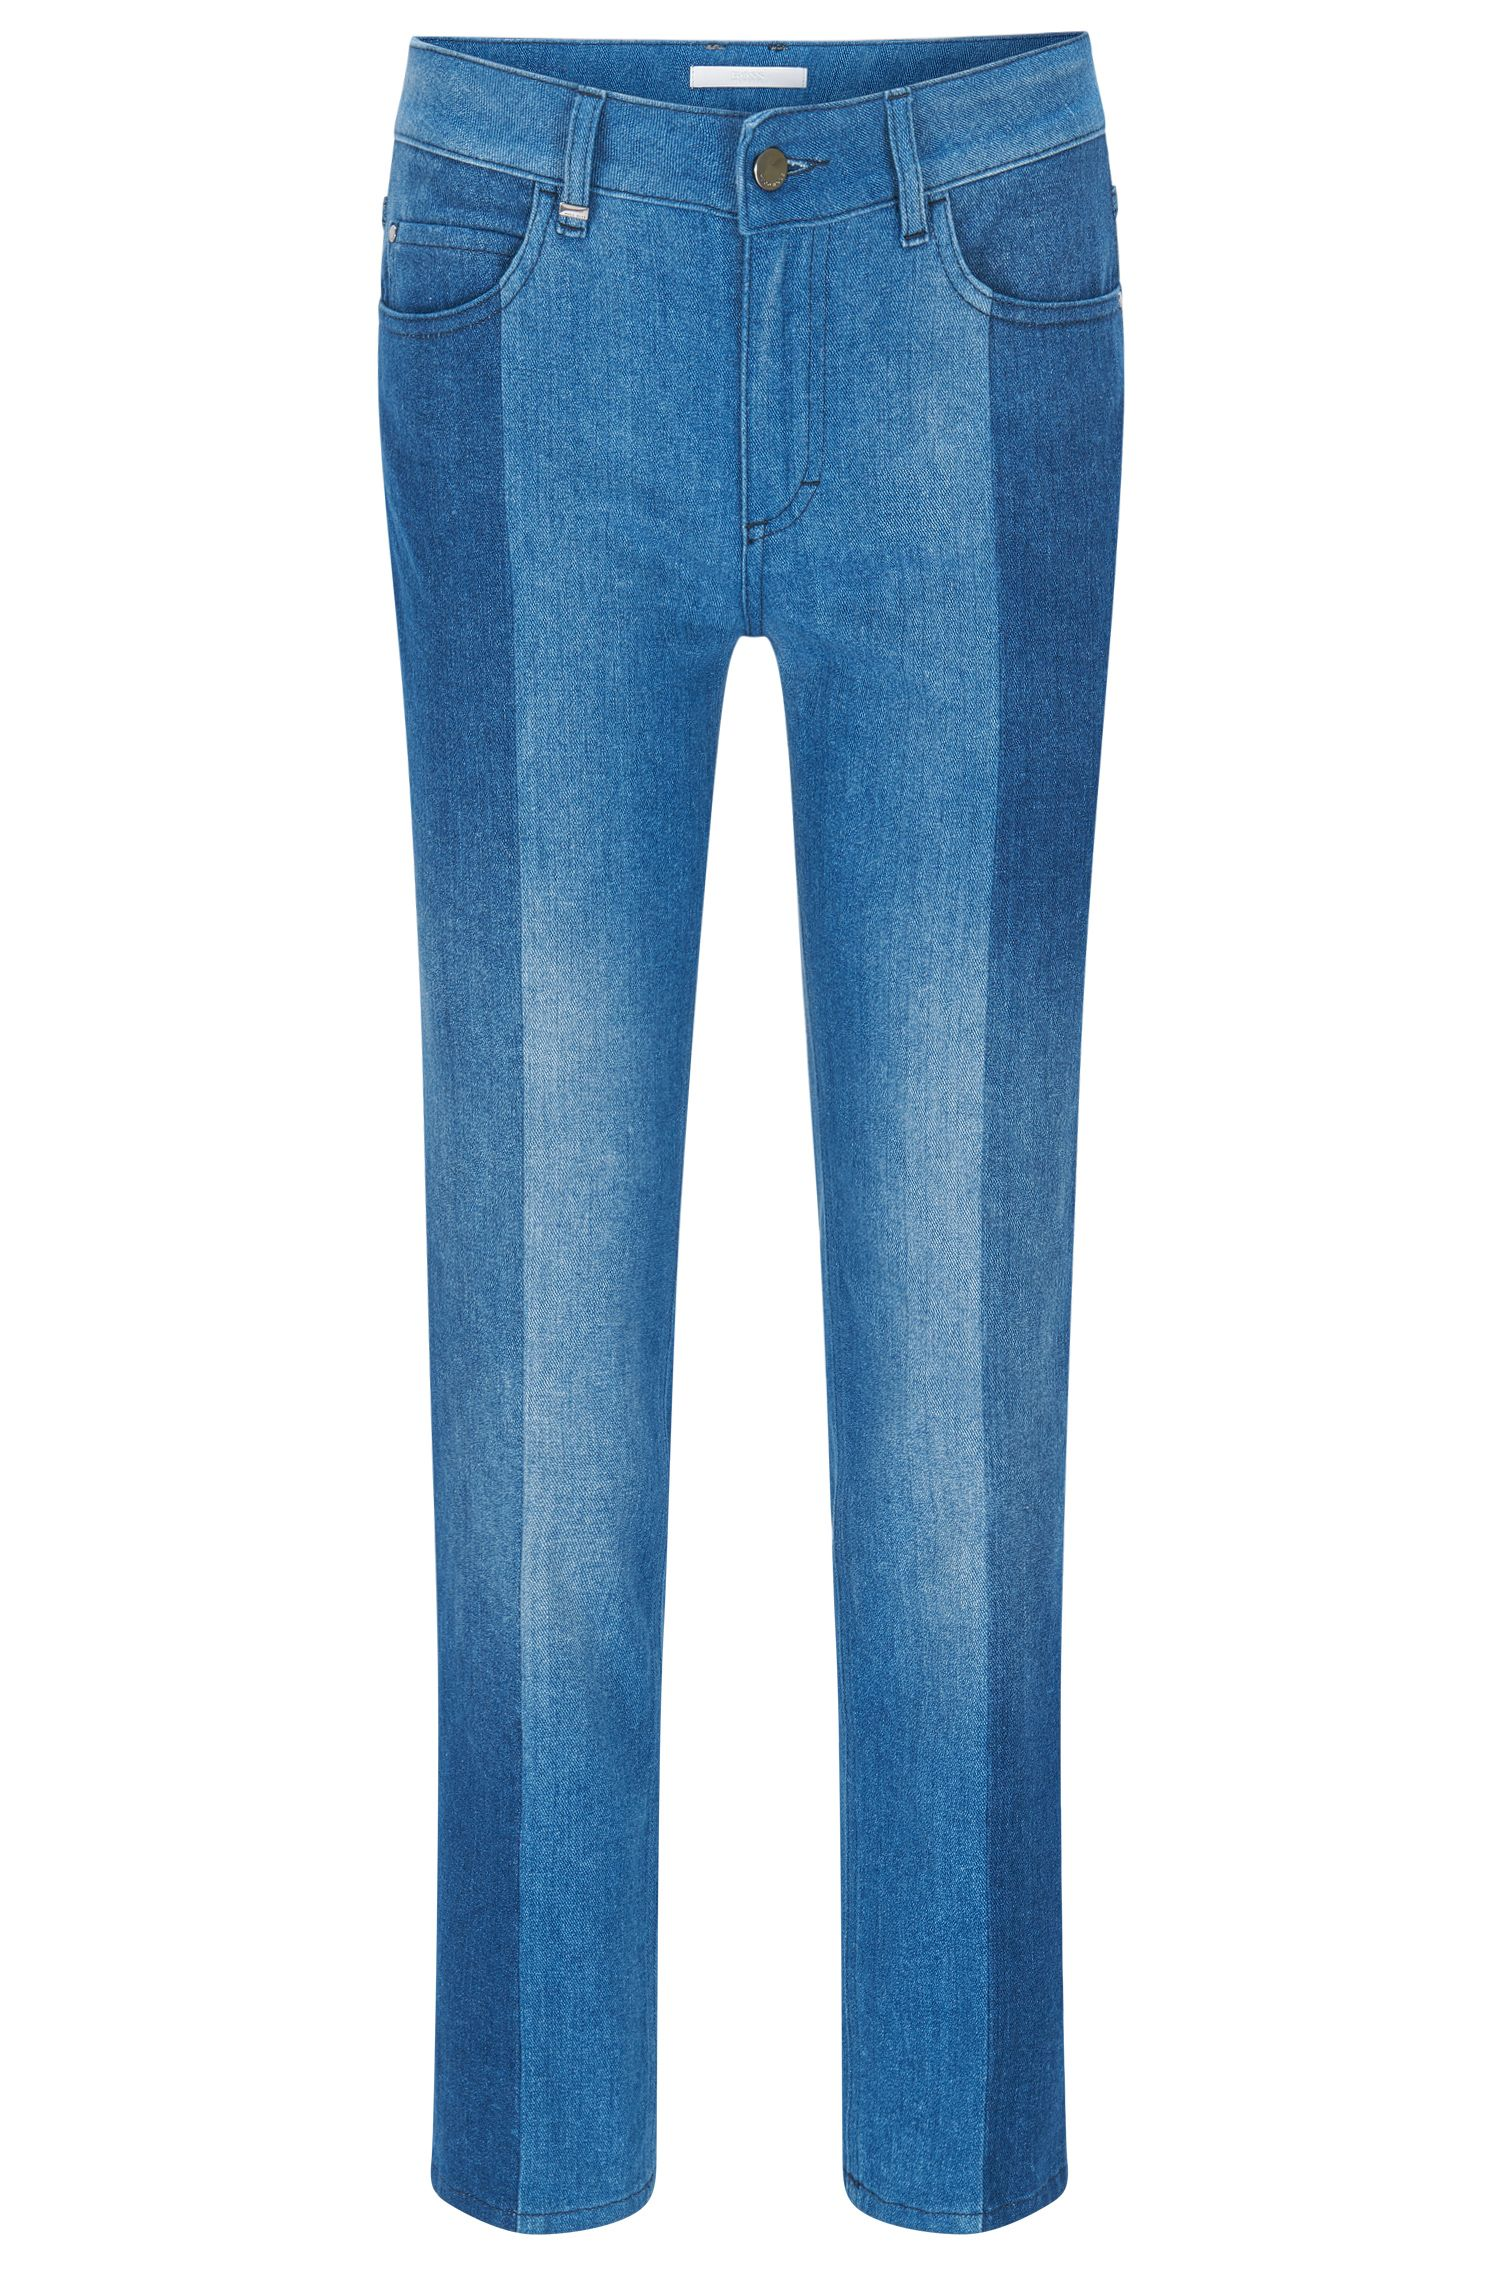 Jeans Relaxed Fit en denim italien premium